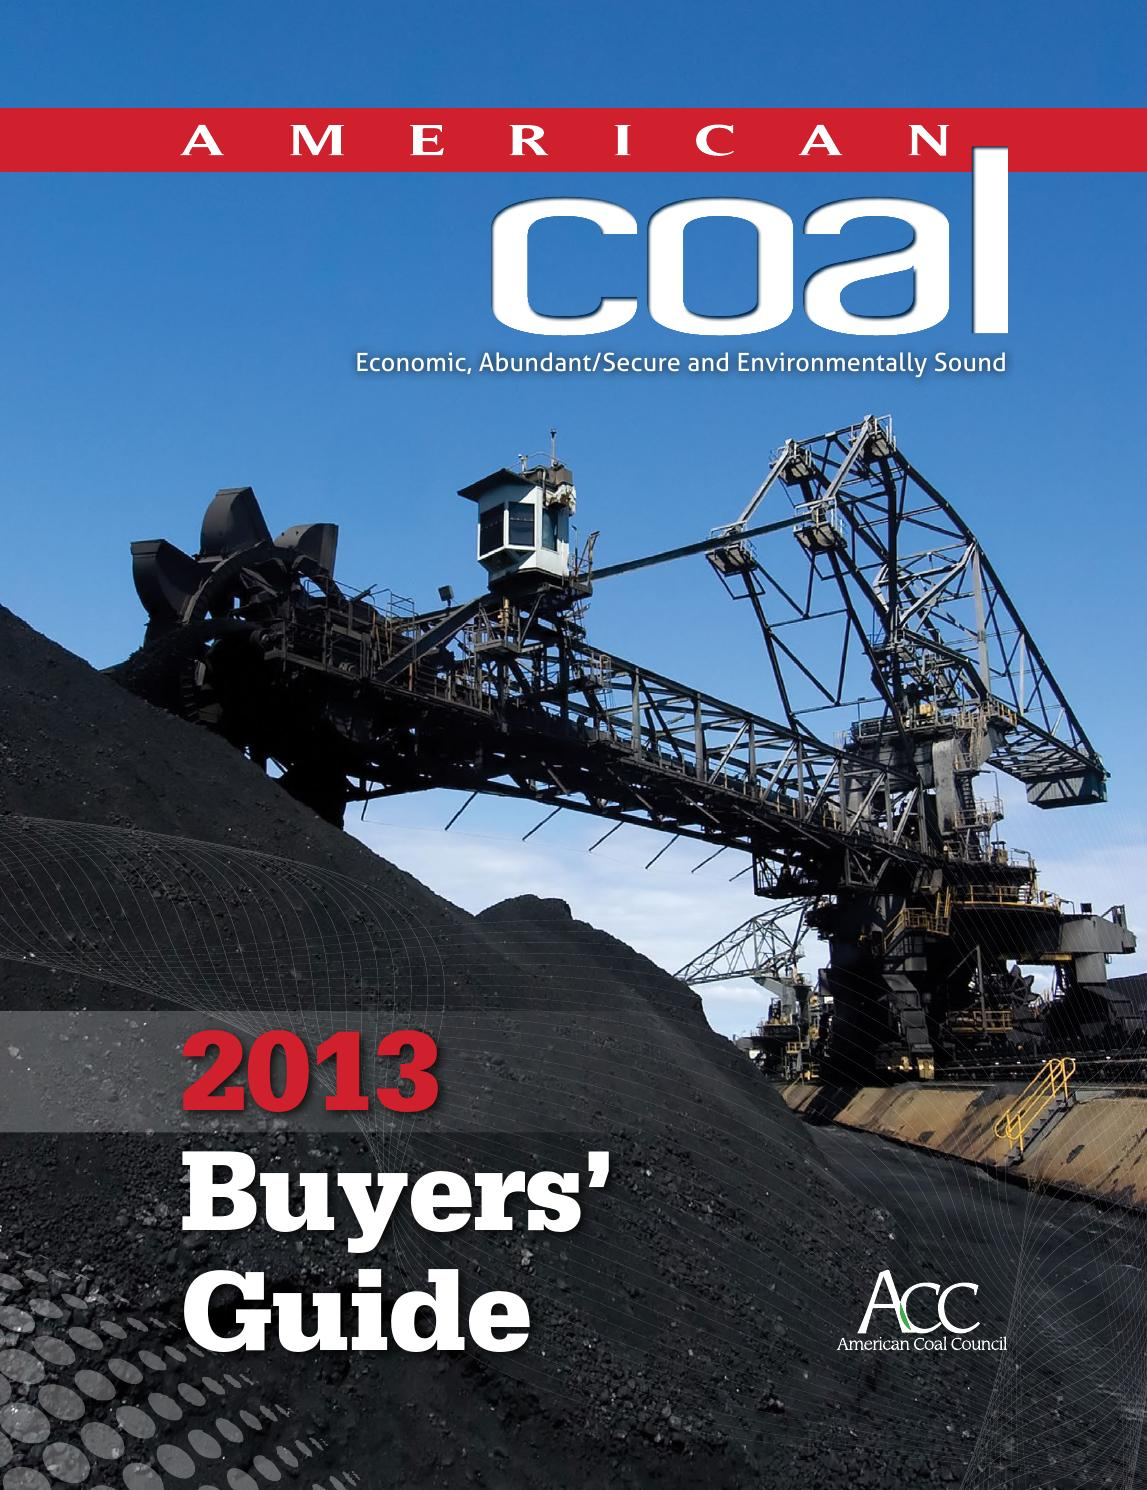 American coal 2013 buyers 39 guide by american coal council for 140 broadway 46th floor new york ny 10005